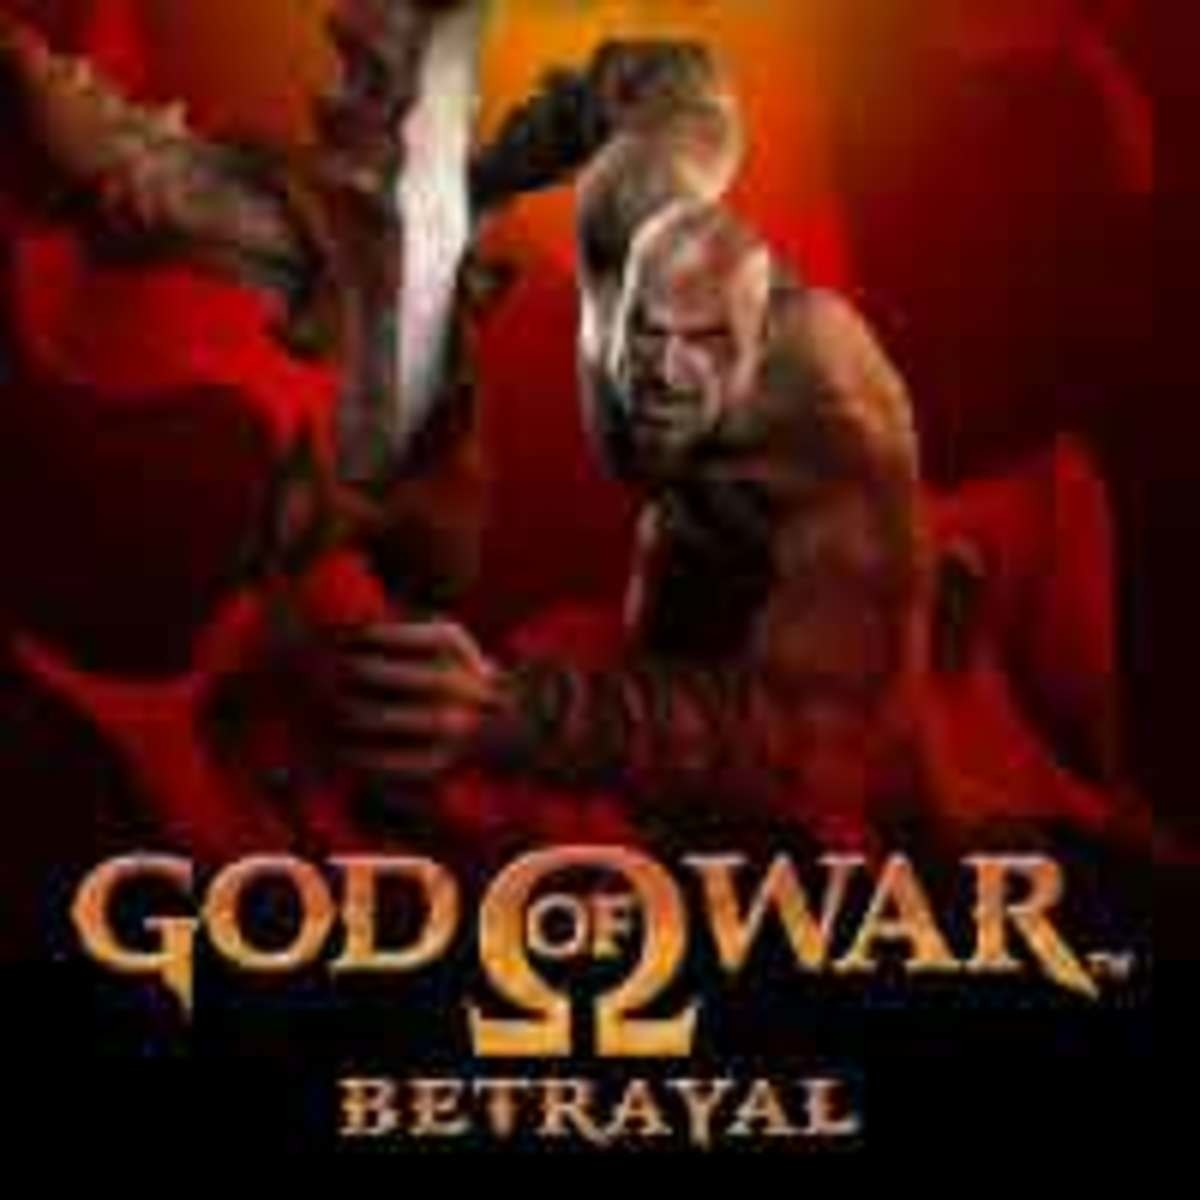 God of War Betrayal - promo image.jpg